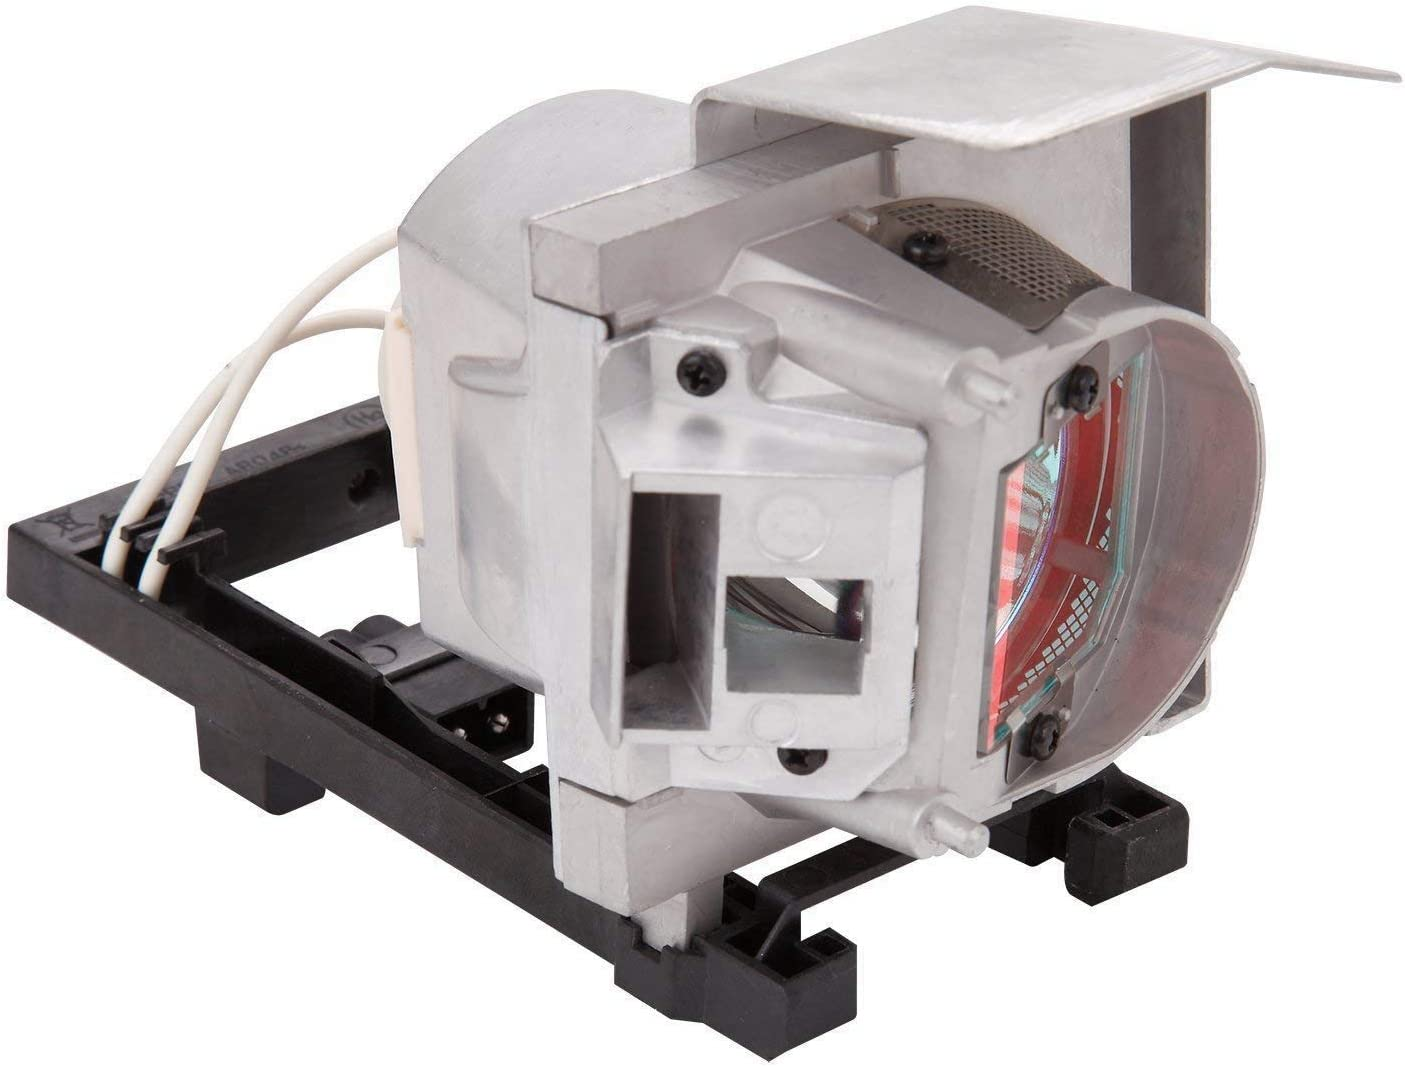 BL-FP280I SP.8UP01GC01 Replacement Lamp with Housing for OPTOMA RW775UTi W307UST W307USTi X307UST X307USTi